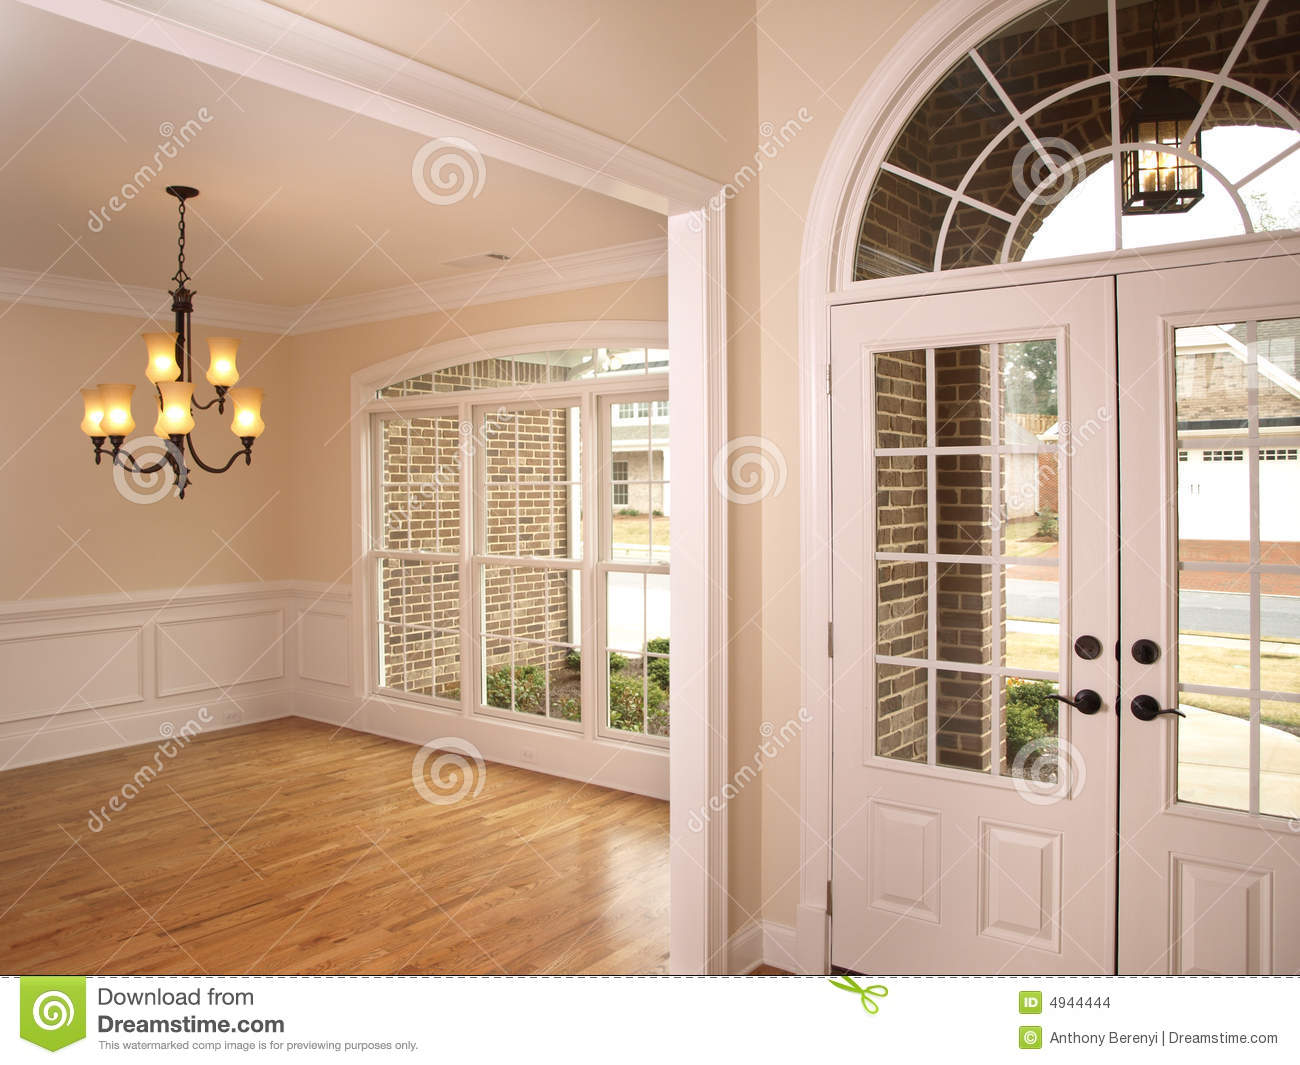 Luxury foyer with arched glass door 2 stock images   image: 4944444